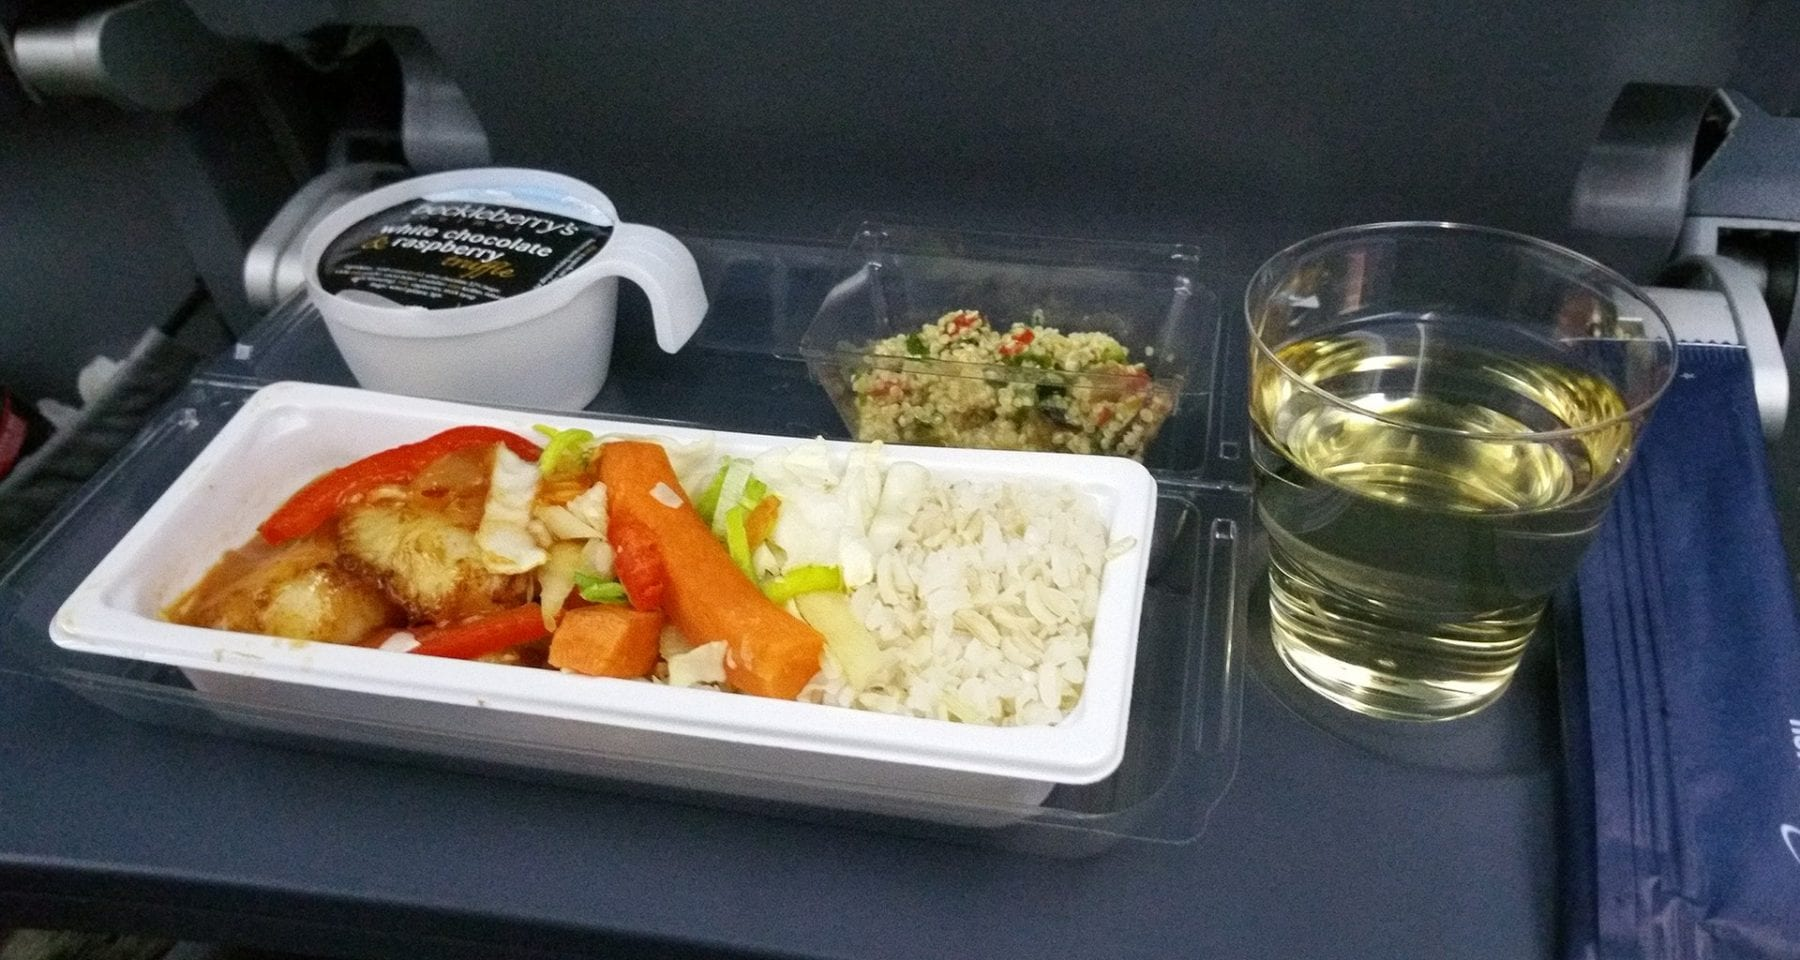 Nowergian airlines premium economy class meal